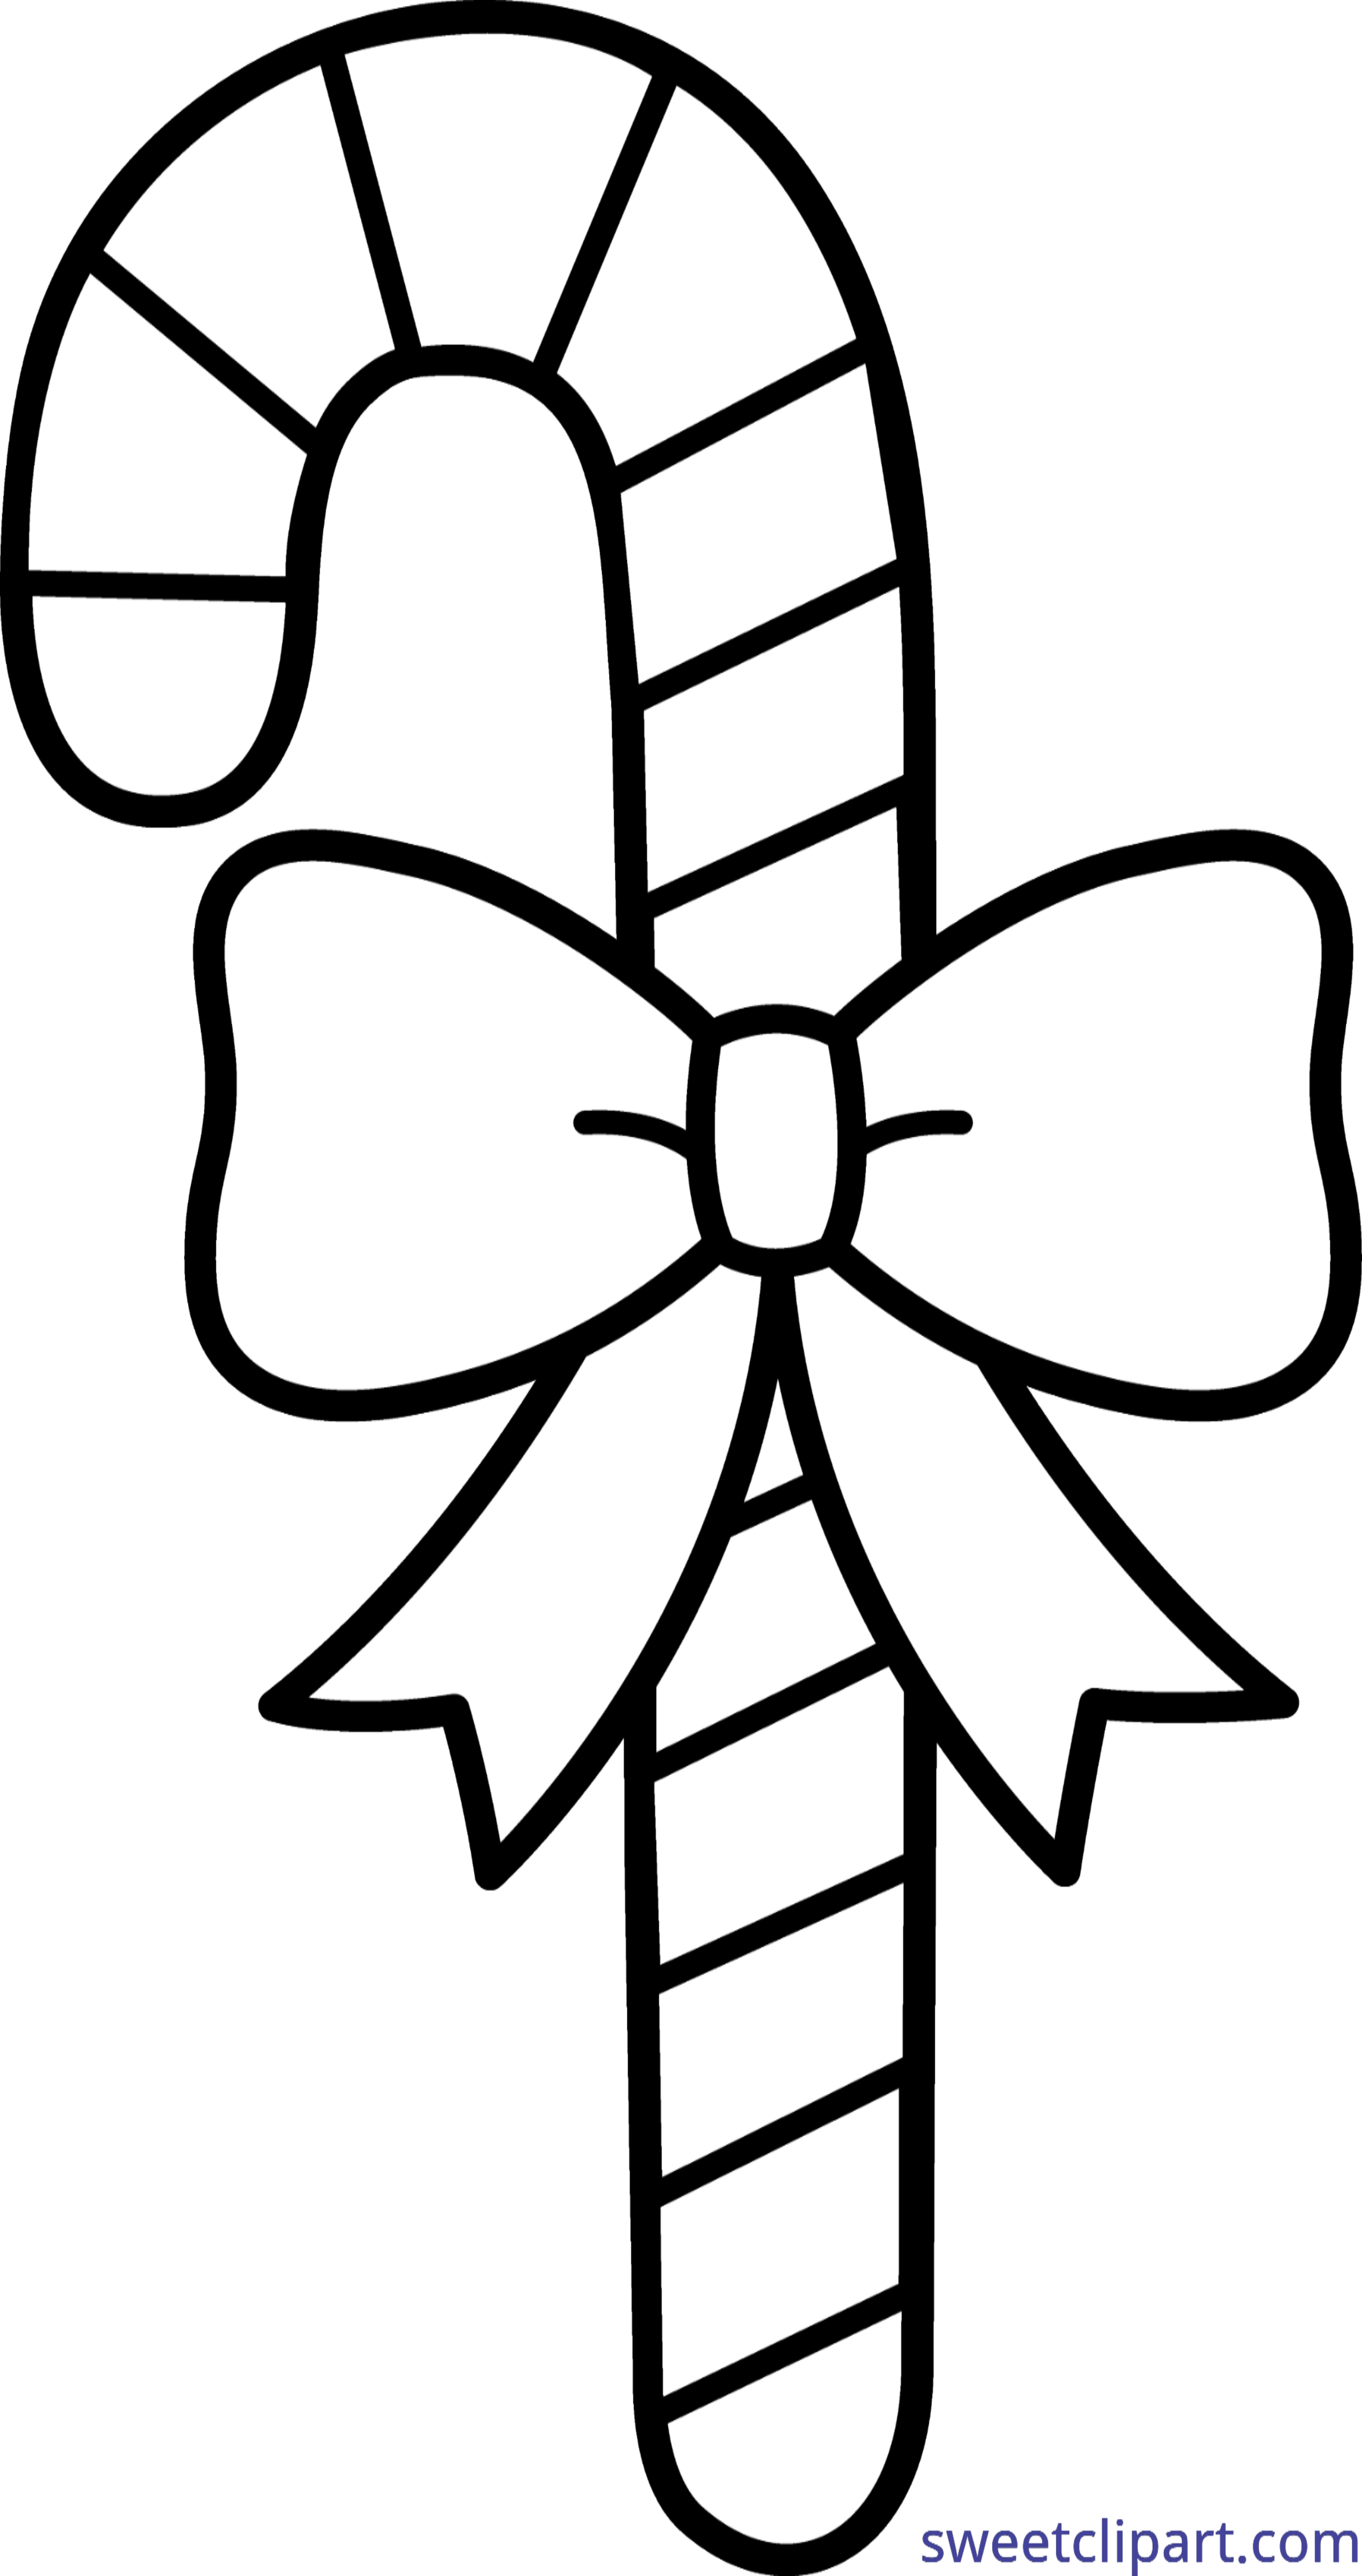 Candy Cane Coloring Page Clip Art.